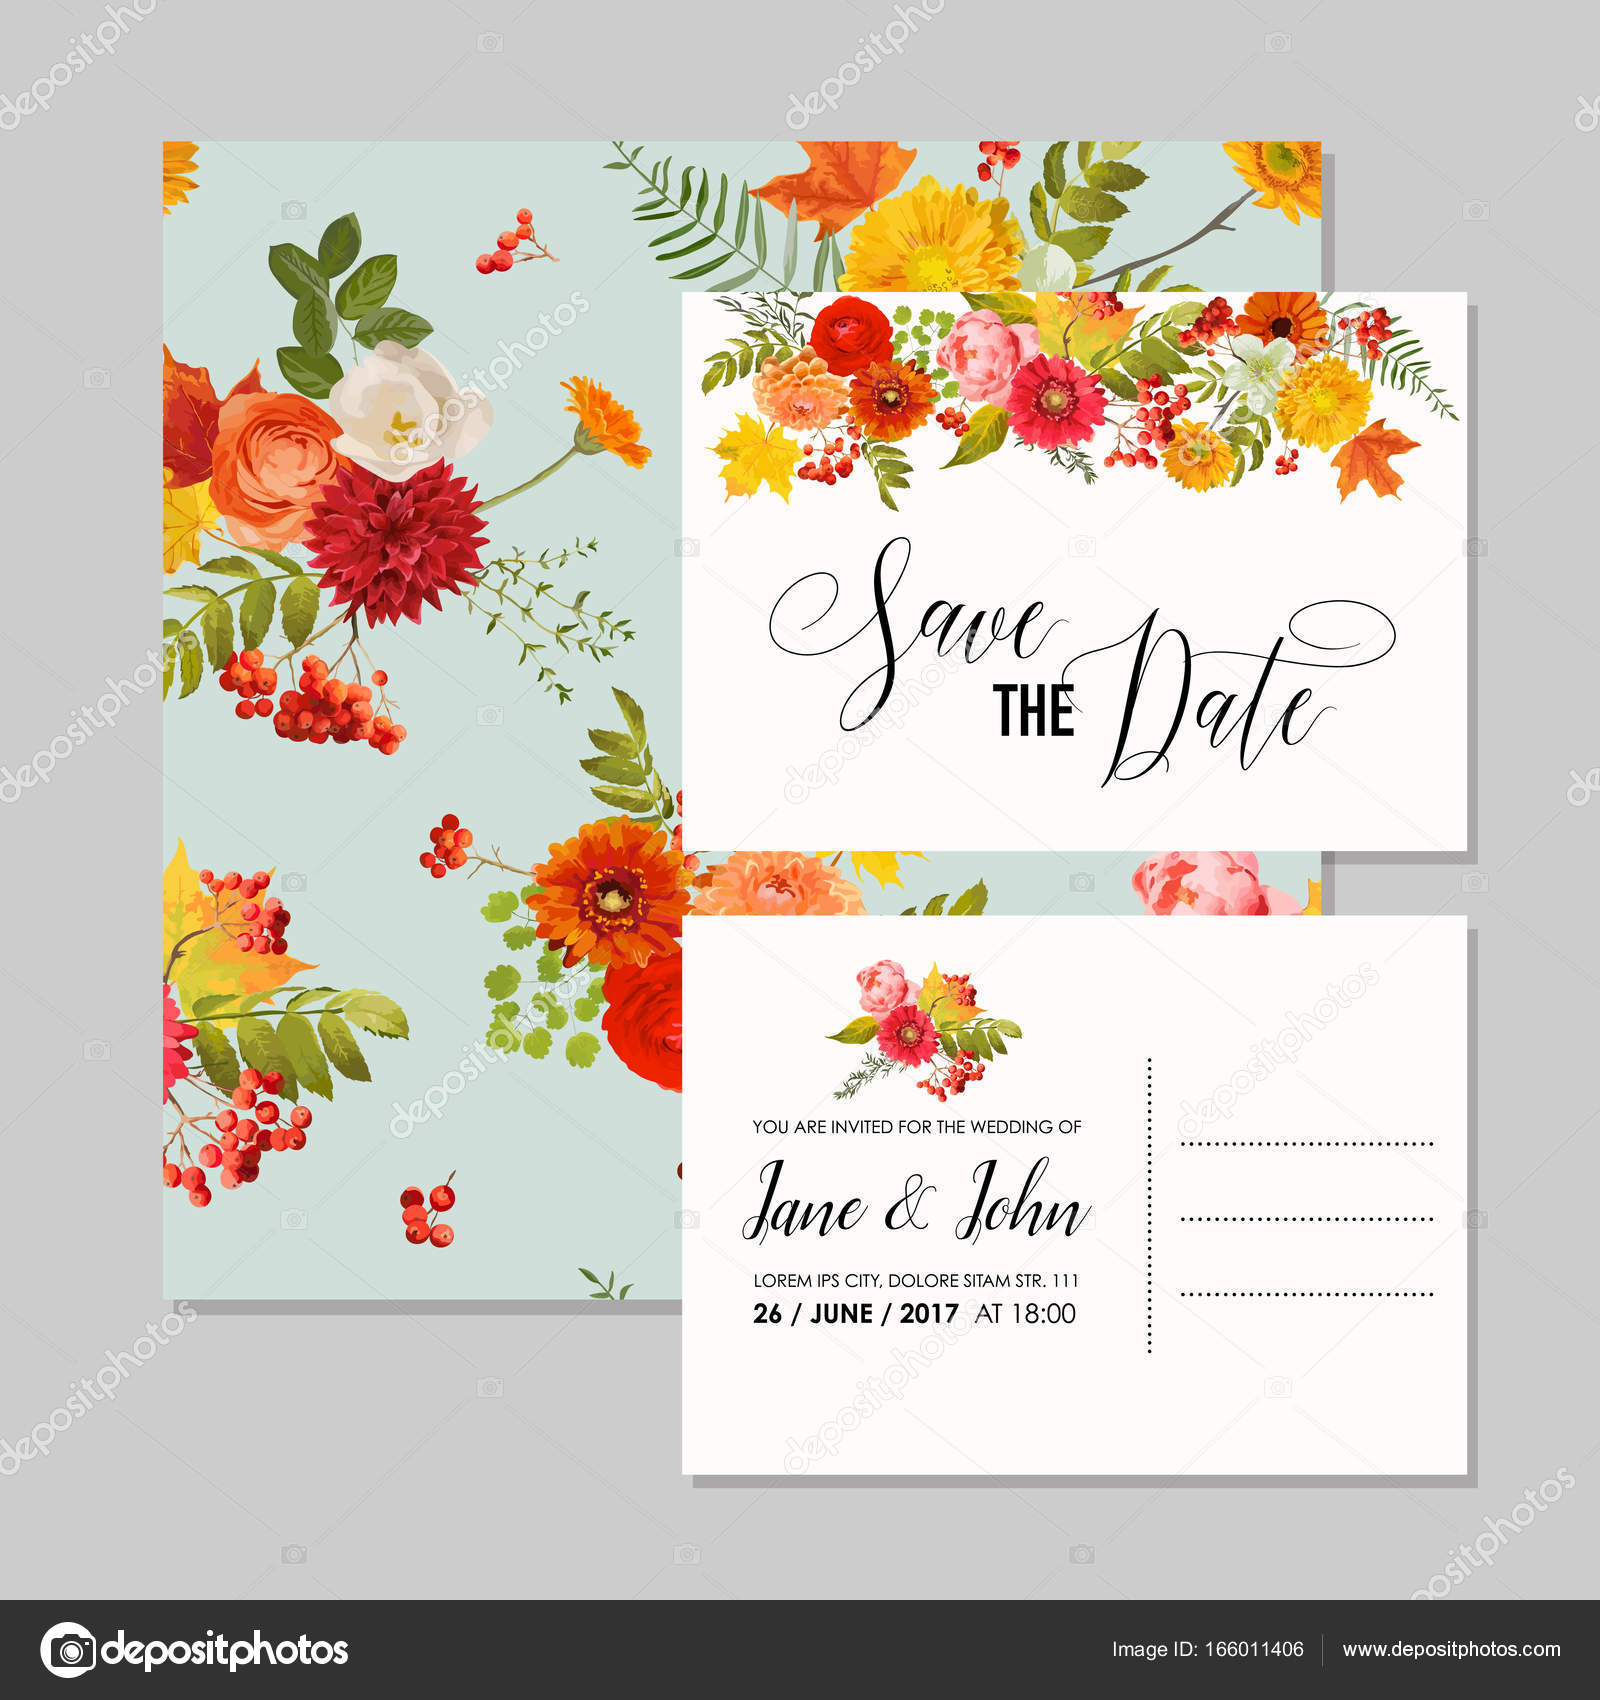 Floral Wedding Invitation Card Template Set with Autumn Flowers ...